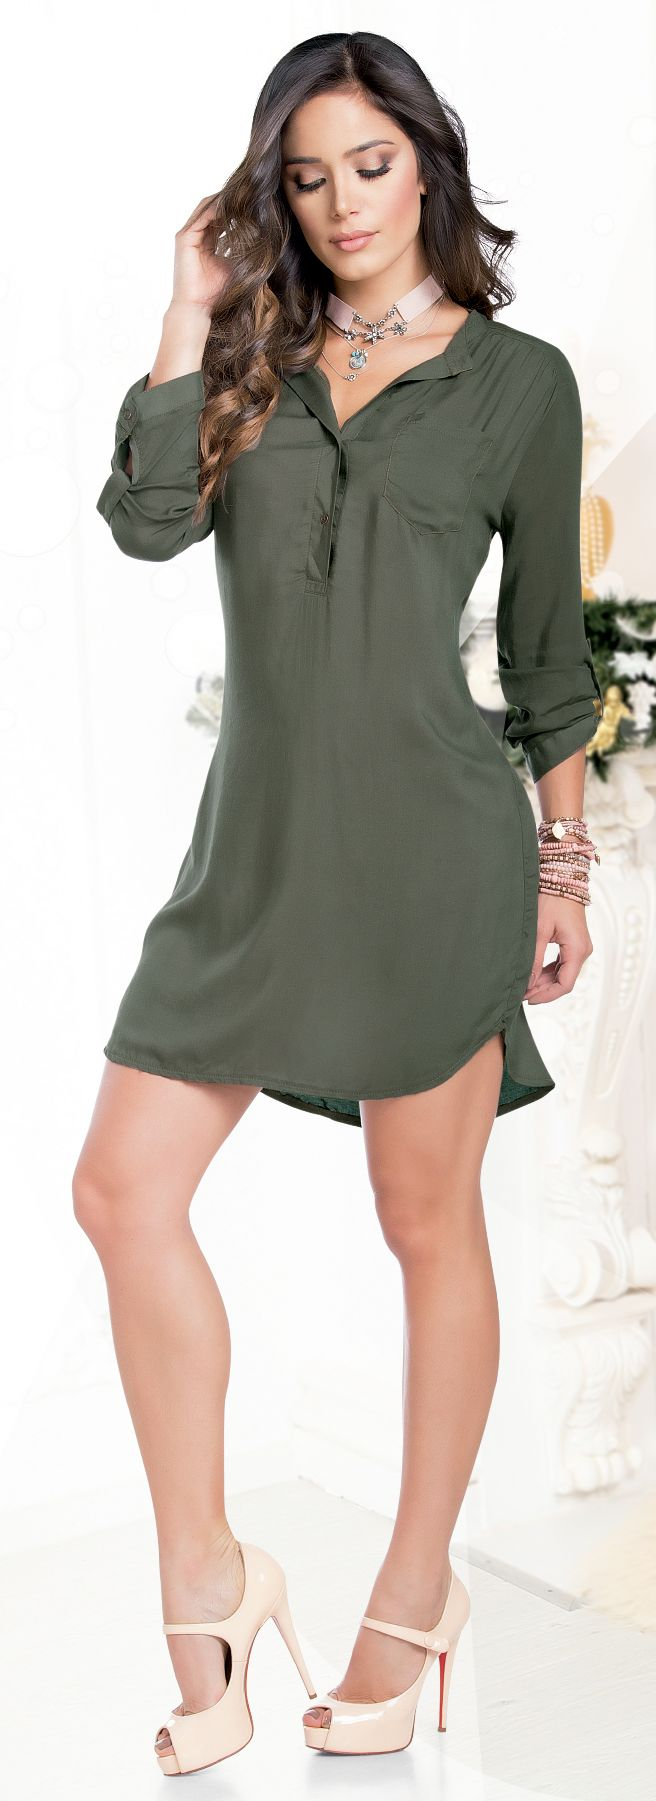 best ropa y accesorios images on pinterest